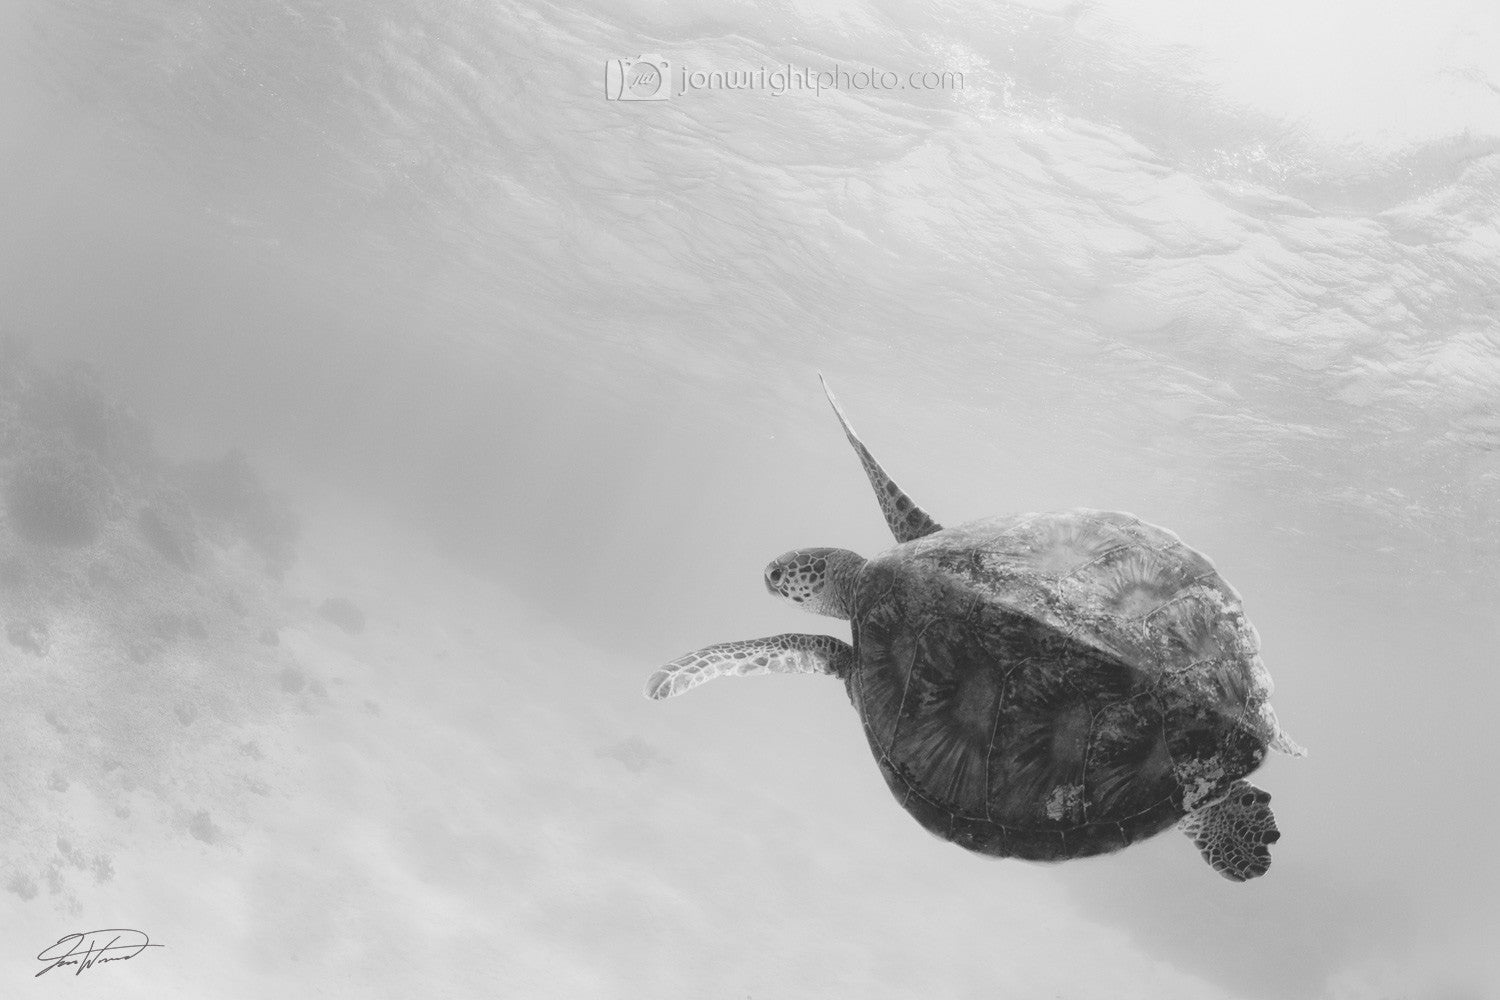 Green Turtle - Black and white